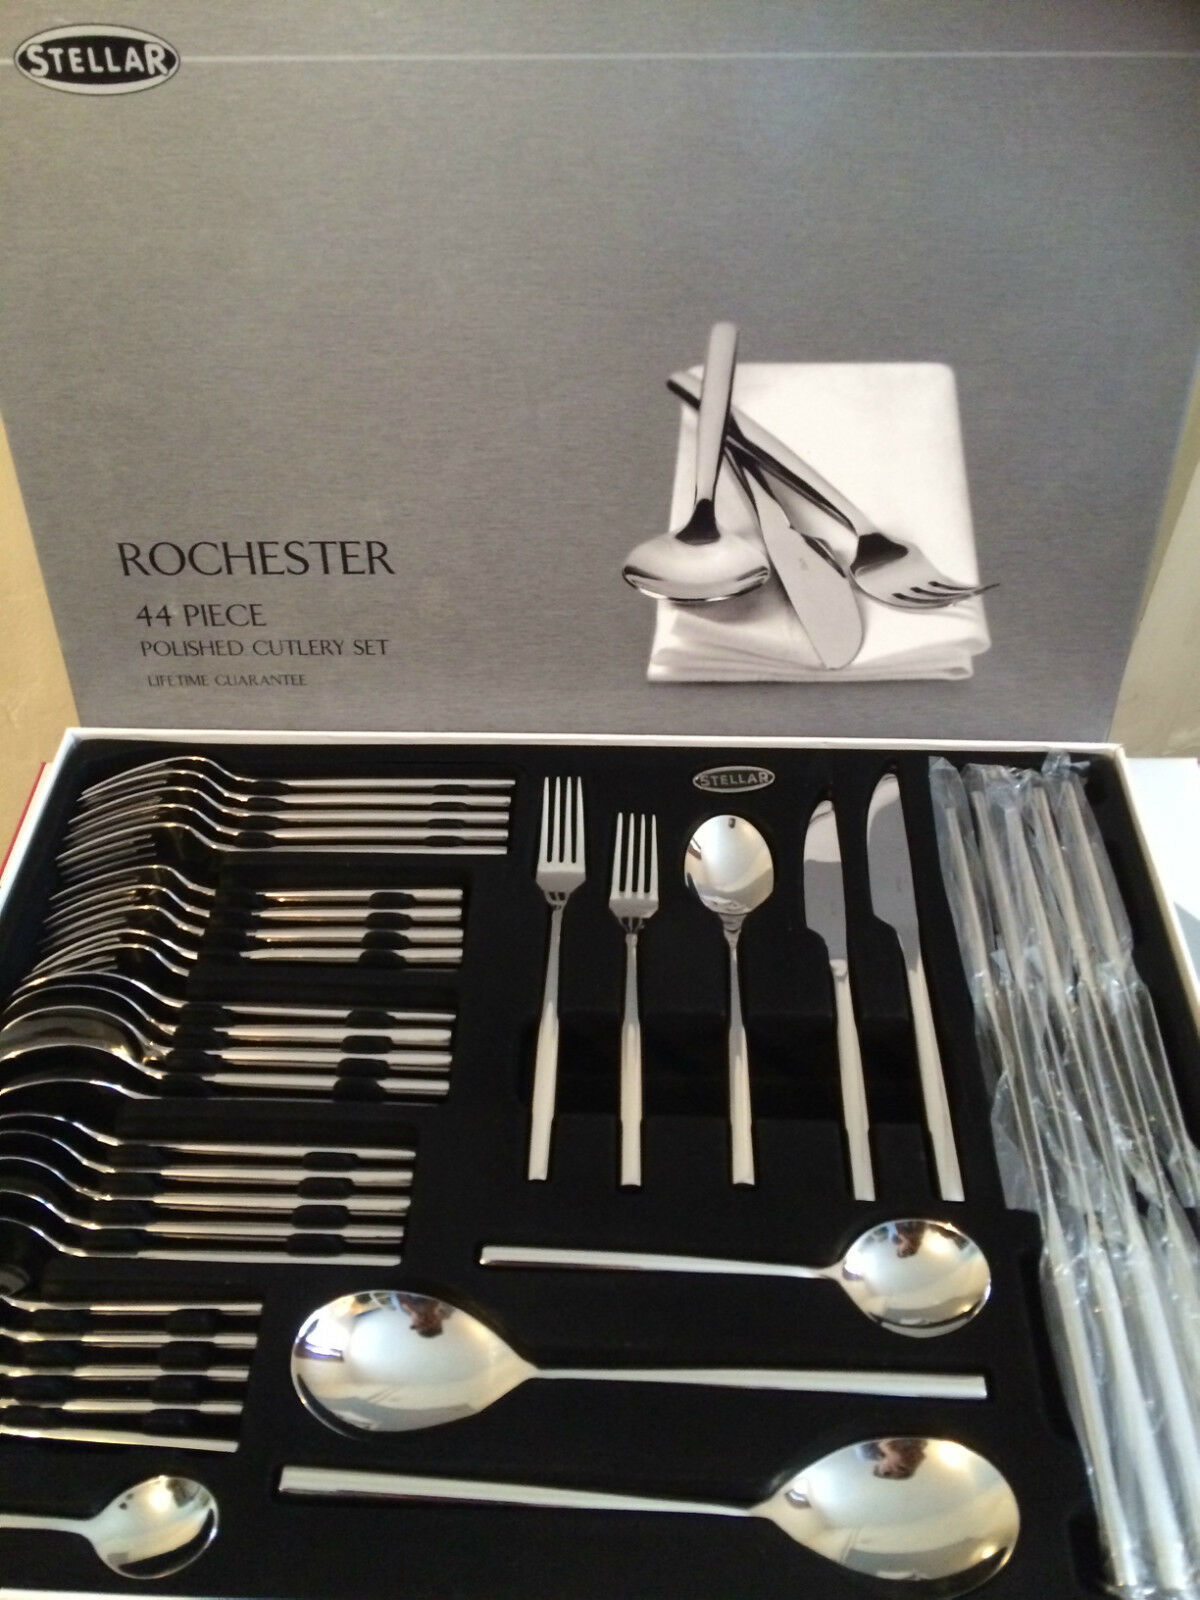 Stellar Rochester 44 Piece 18 18 18 10 Polished Cutlery Set - Boxed - BL58, NEW 89a9a8